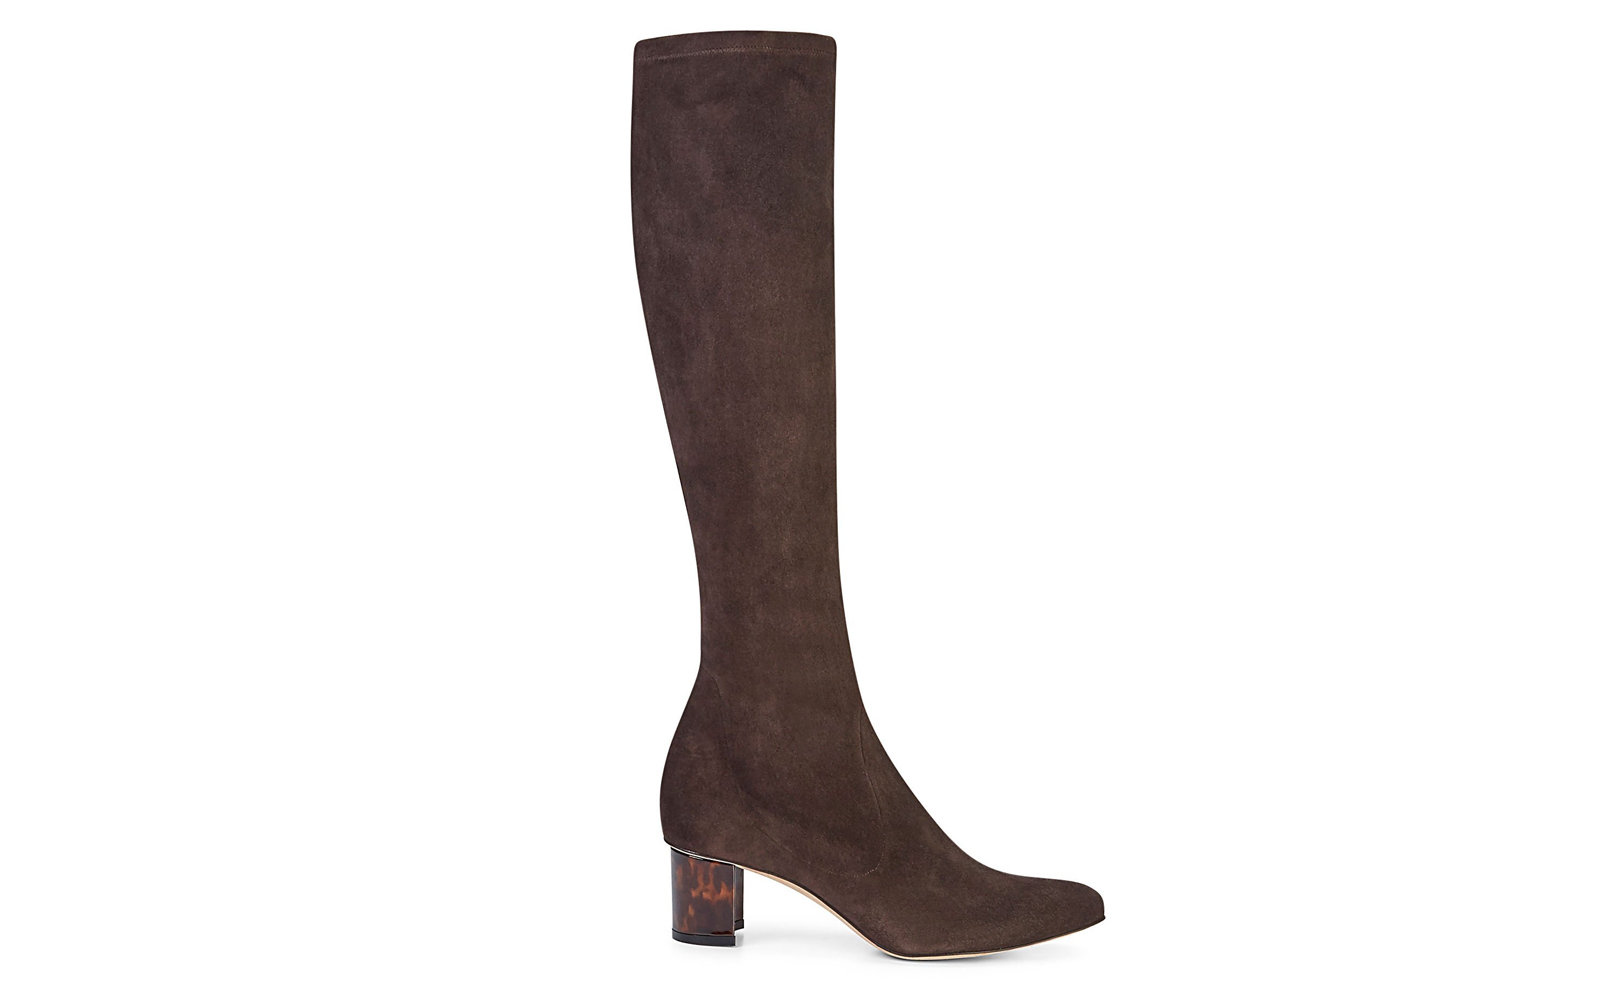 Alexandra Knee-high Boot in Chocolate Stretch Suede